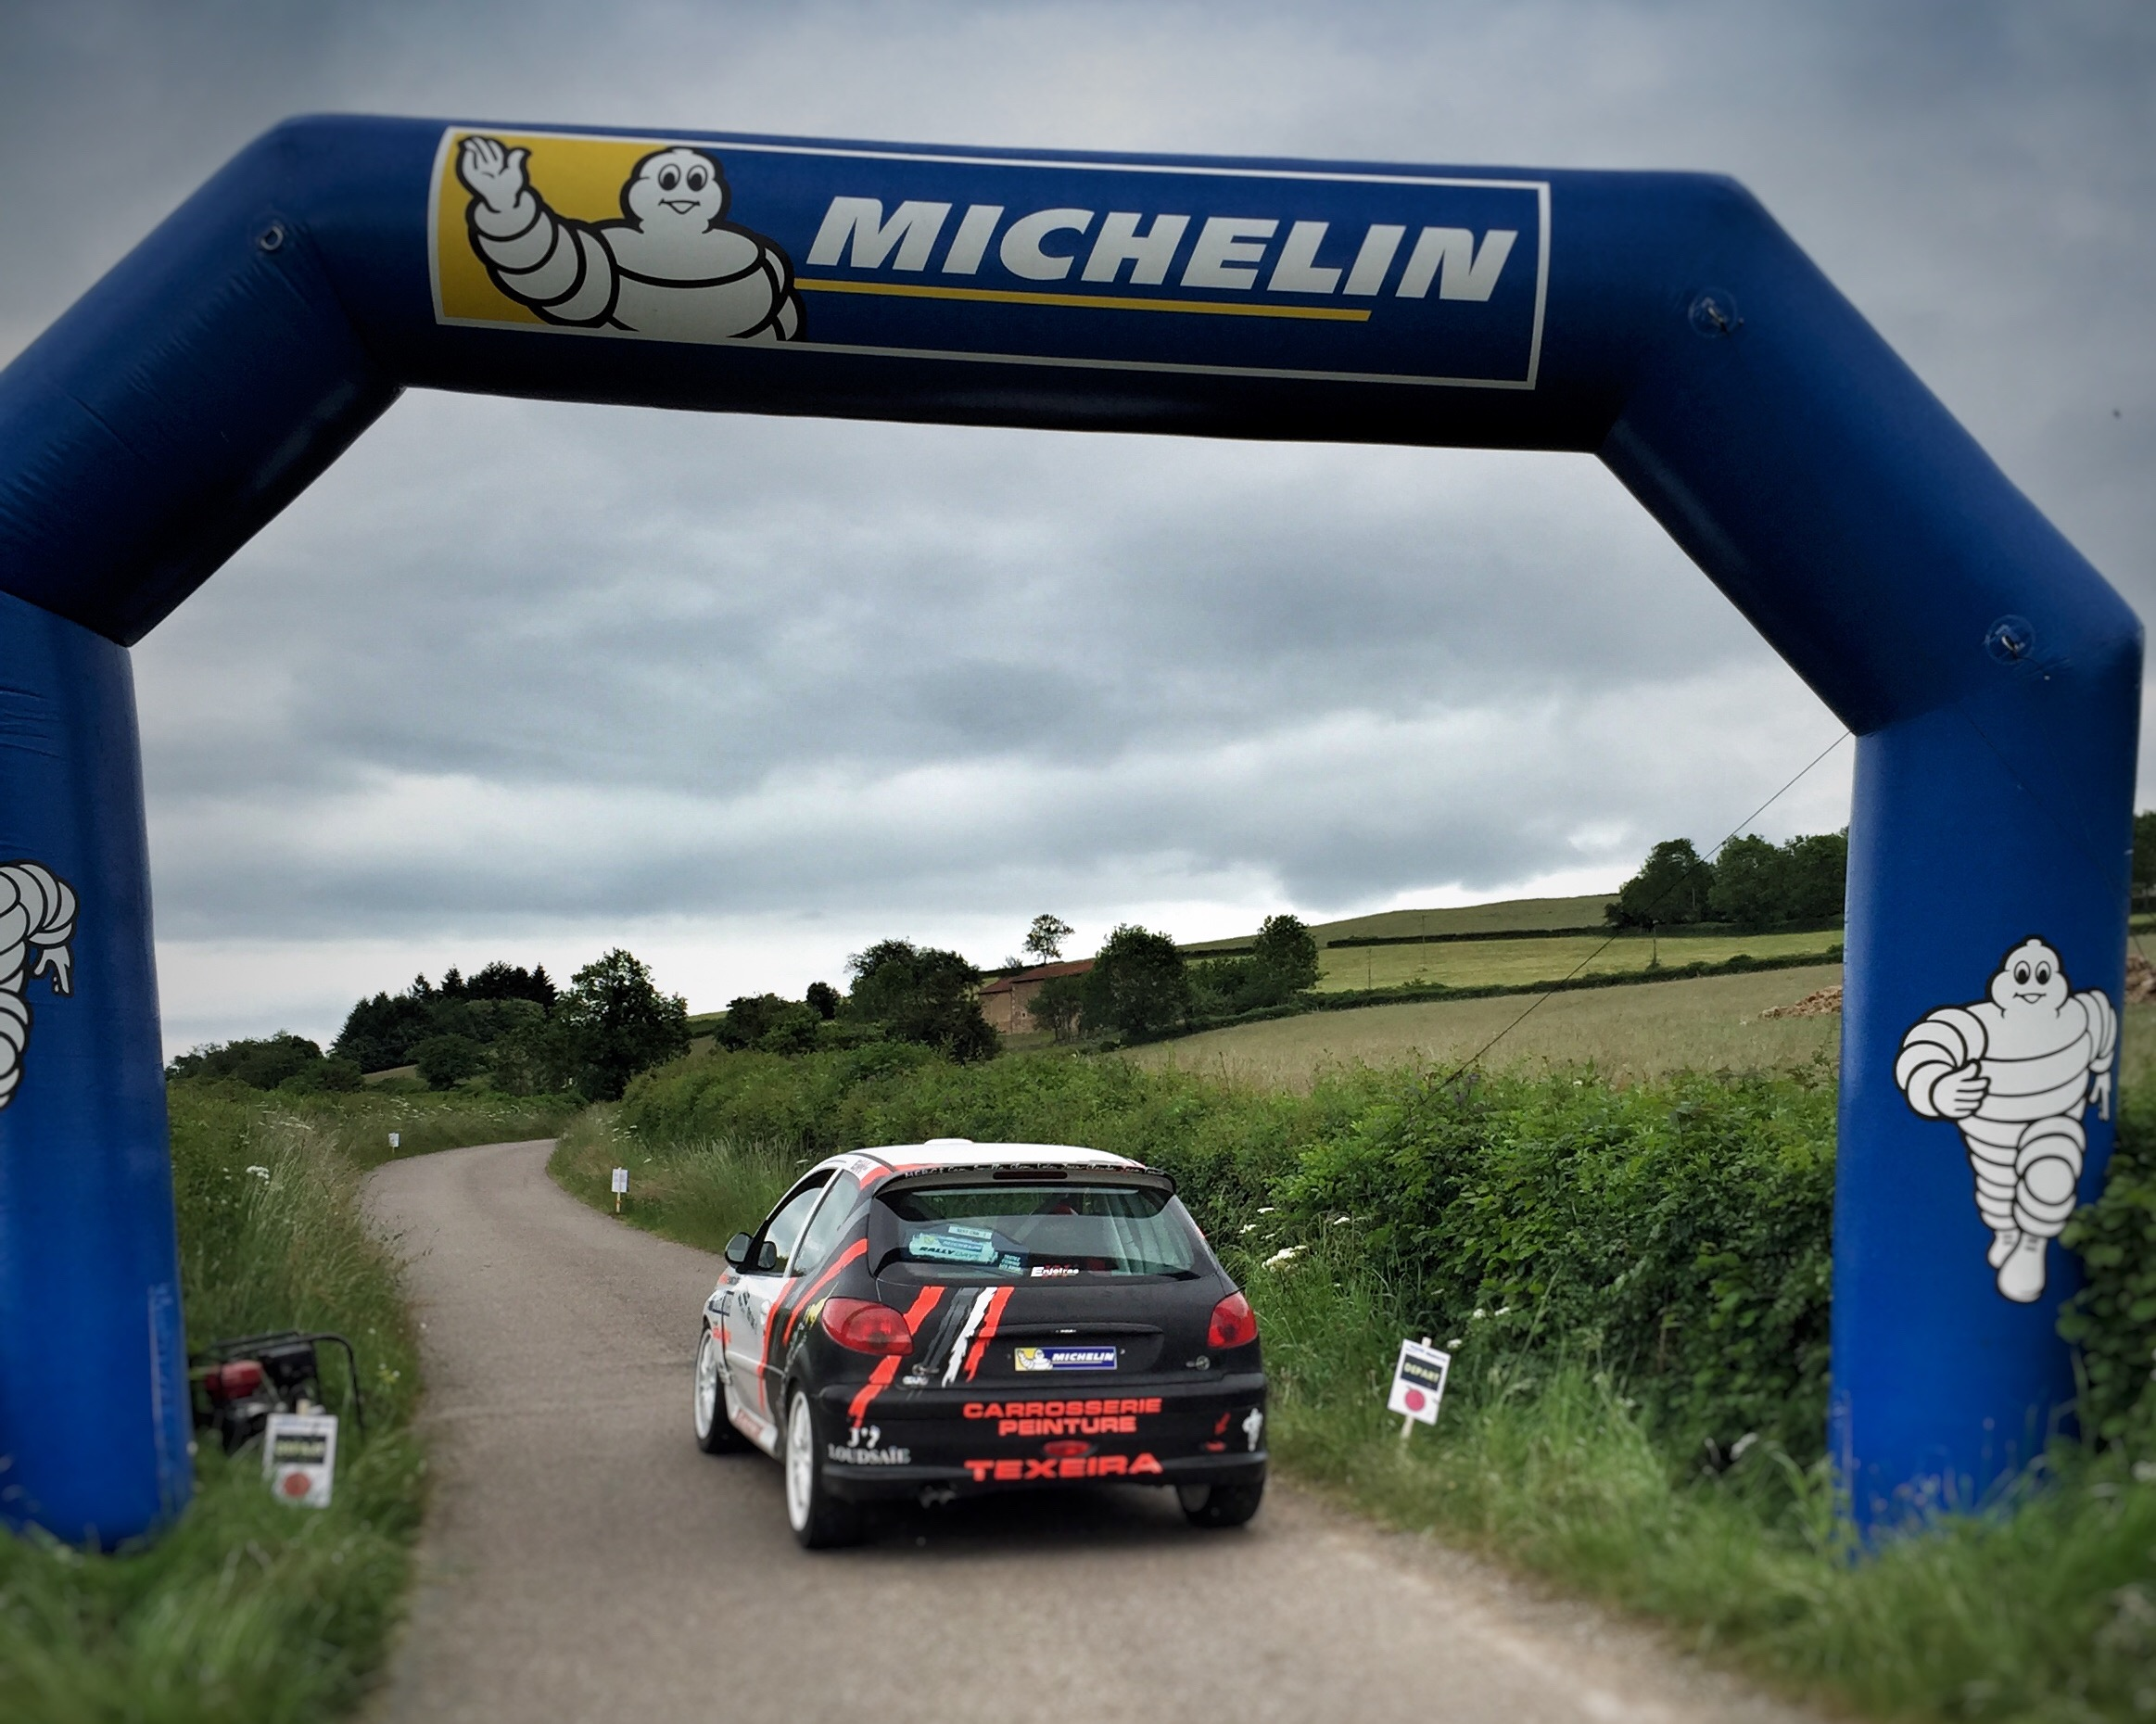 Le Michelin Rallye Days à Limoges